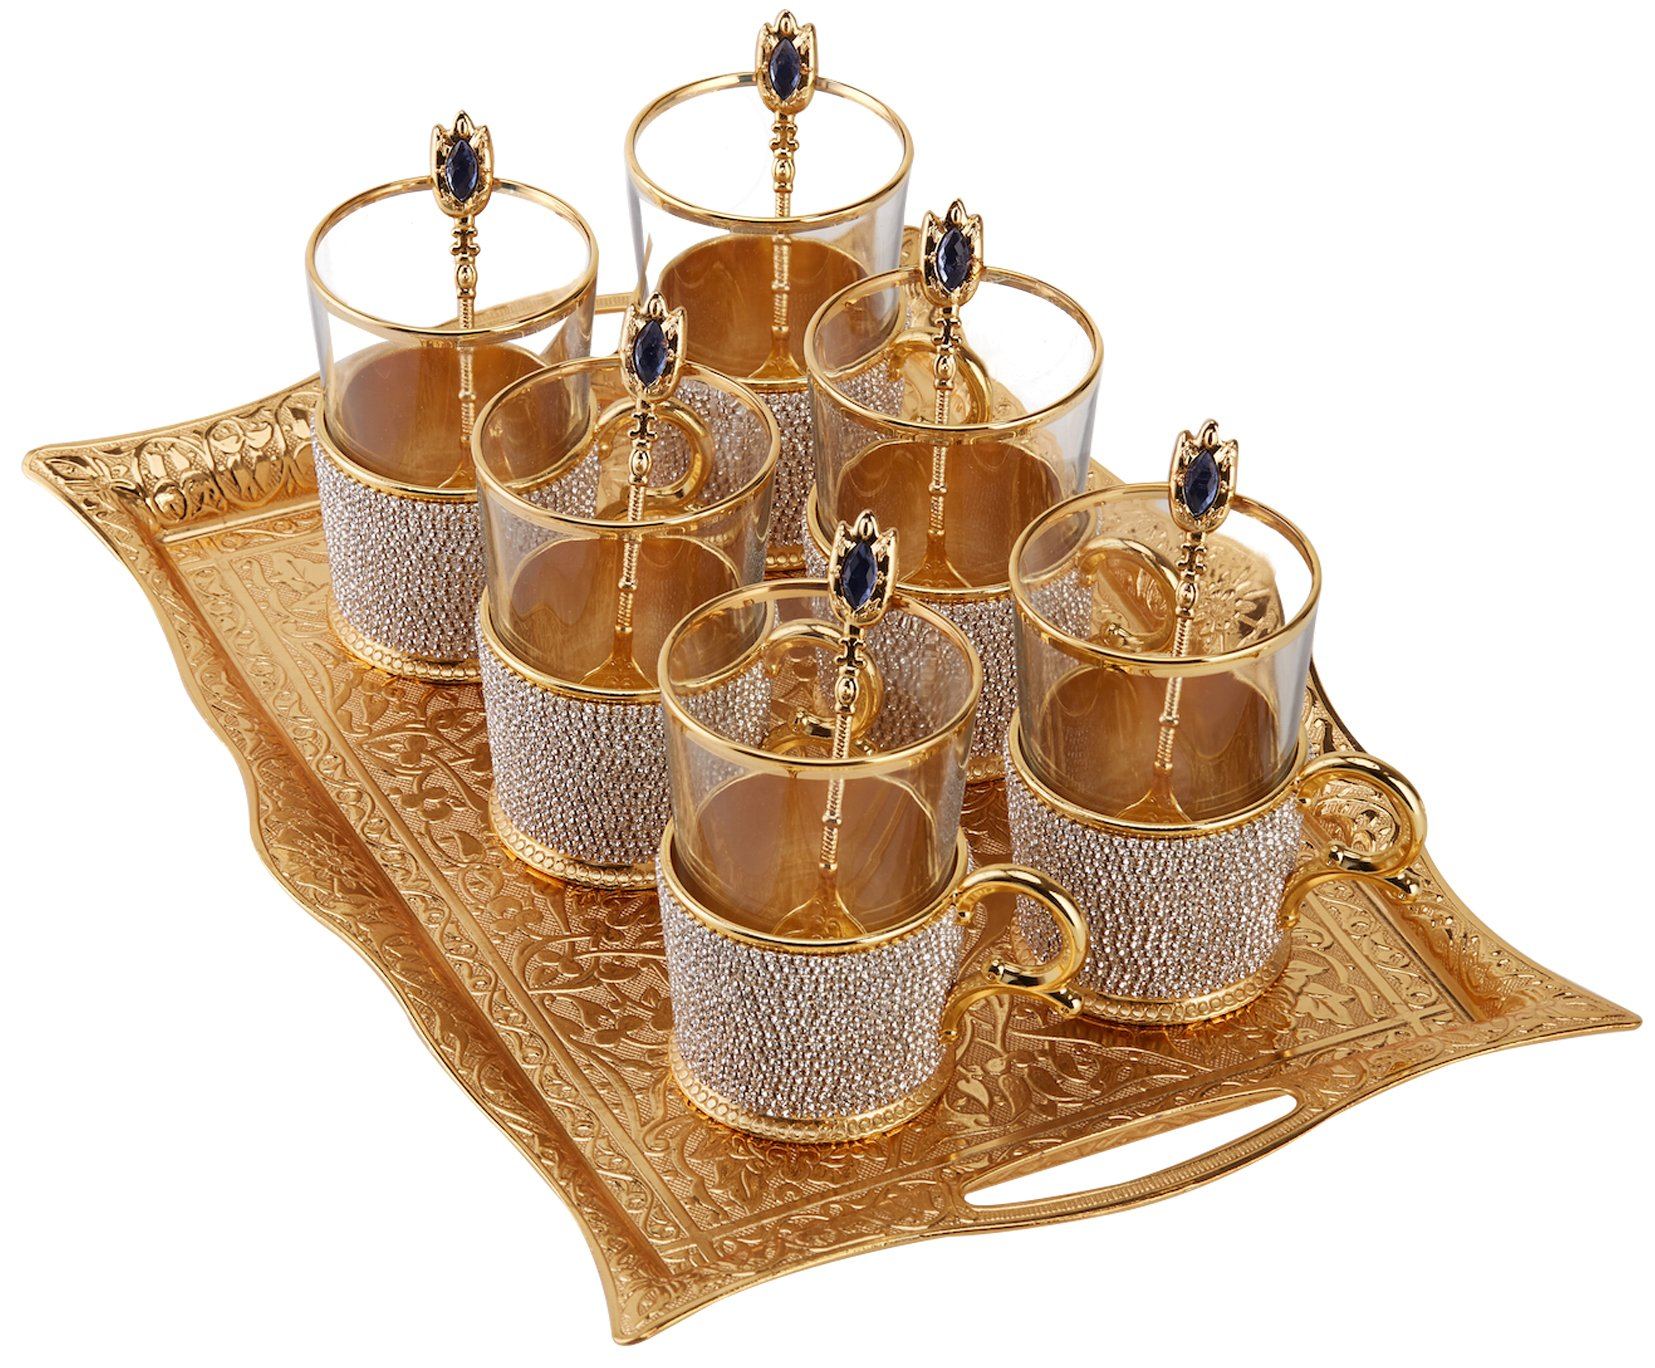 (Set of 6) XL Turkish Tea Glasses Set with Holders Spoons & TRAY, Decorated with Swarovski Type Crystals and Pearls